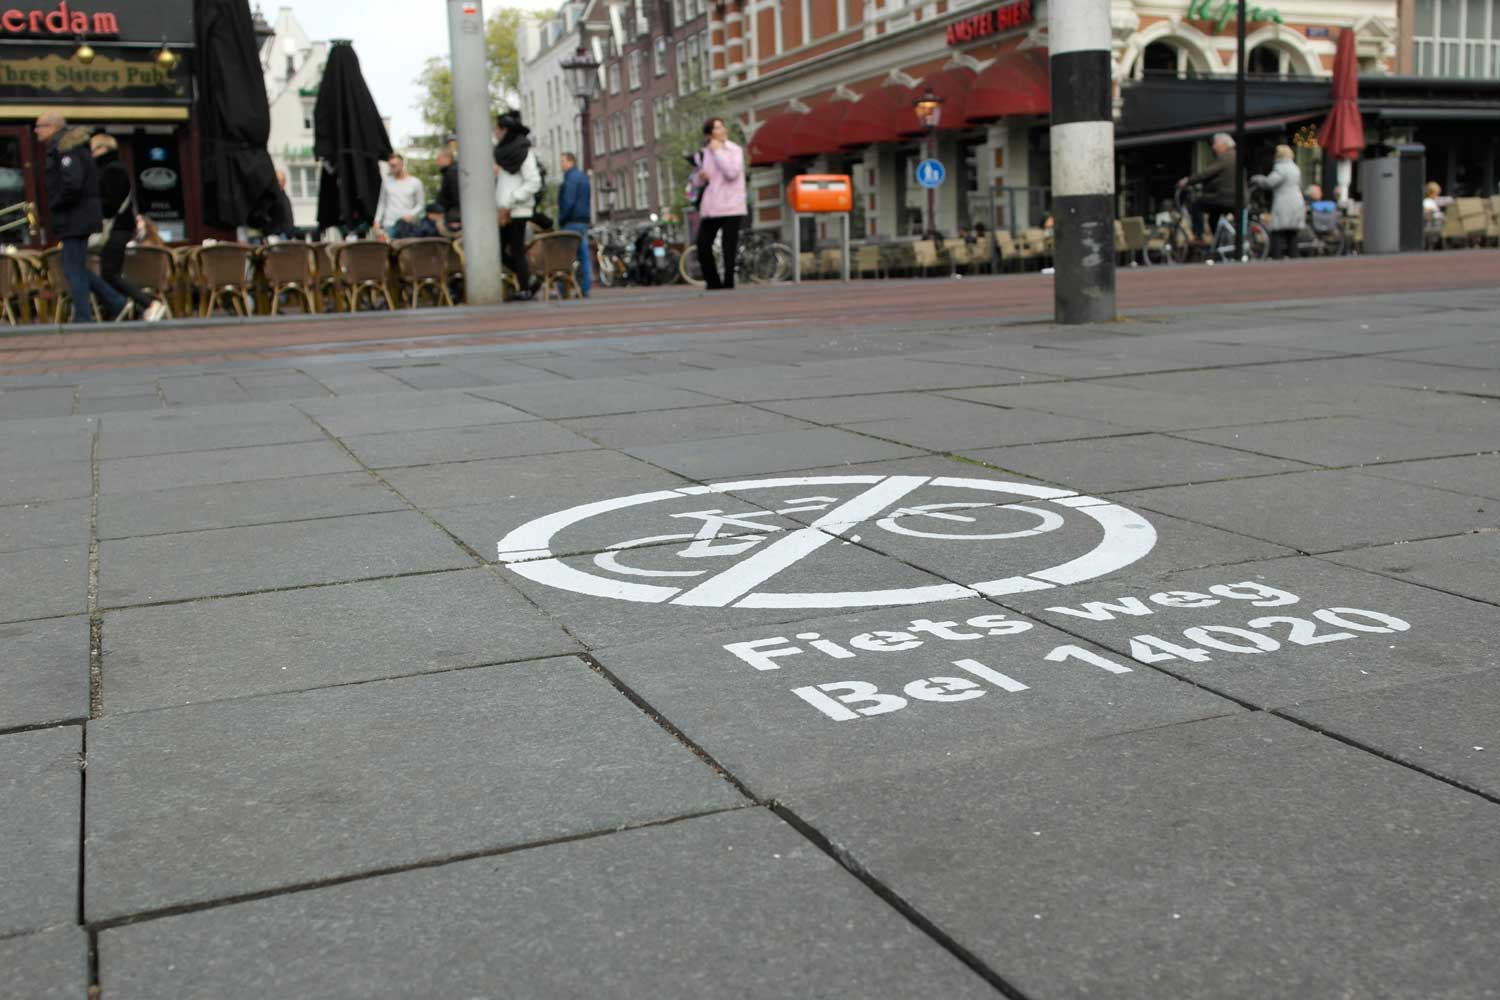 Fiets weg  campaign reduces bike parking problem on Rembrandtplein by 90% in just two weeks.